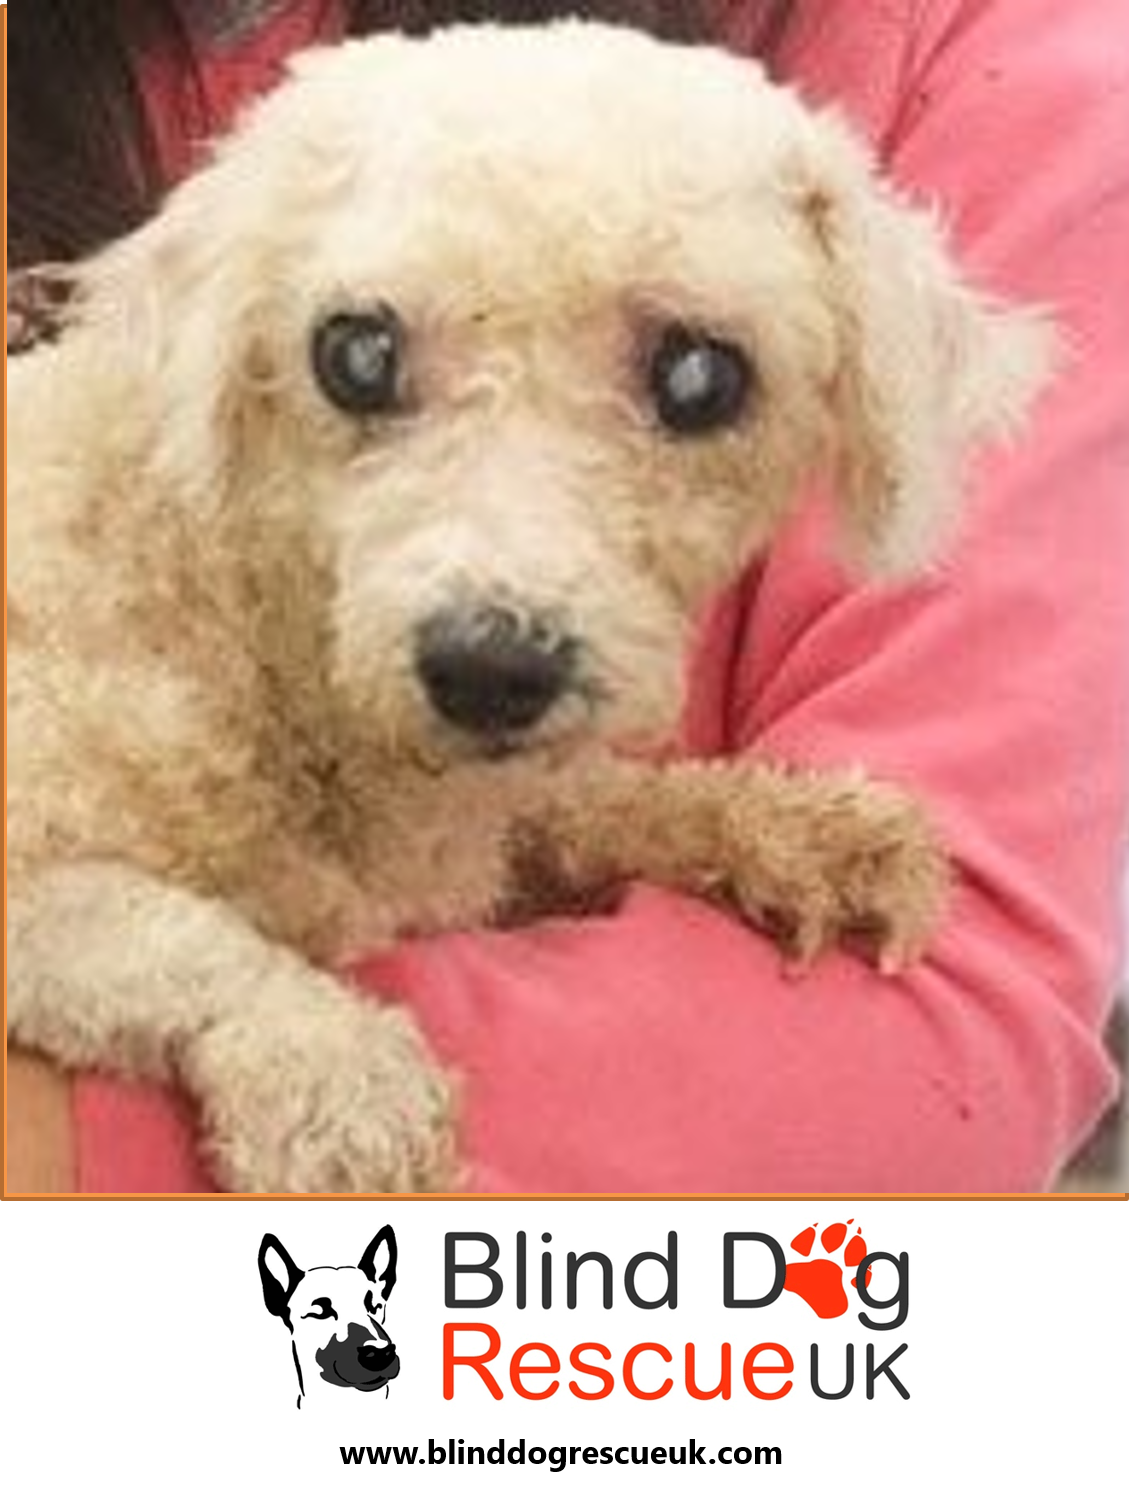 Rainbow Needs Some Love In Her Life She Was Used As A Breeding Dog So Has Never Known Home Life Rainbow Is A Bichon Frise Ple Blind Dog Dog Rescue Uk